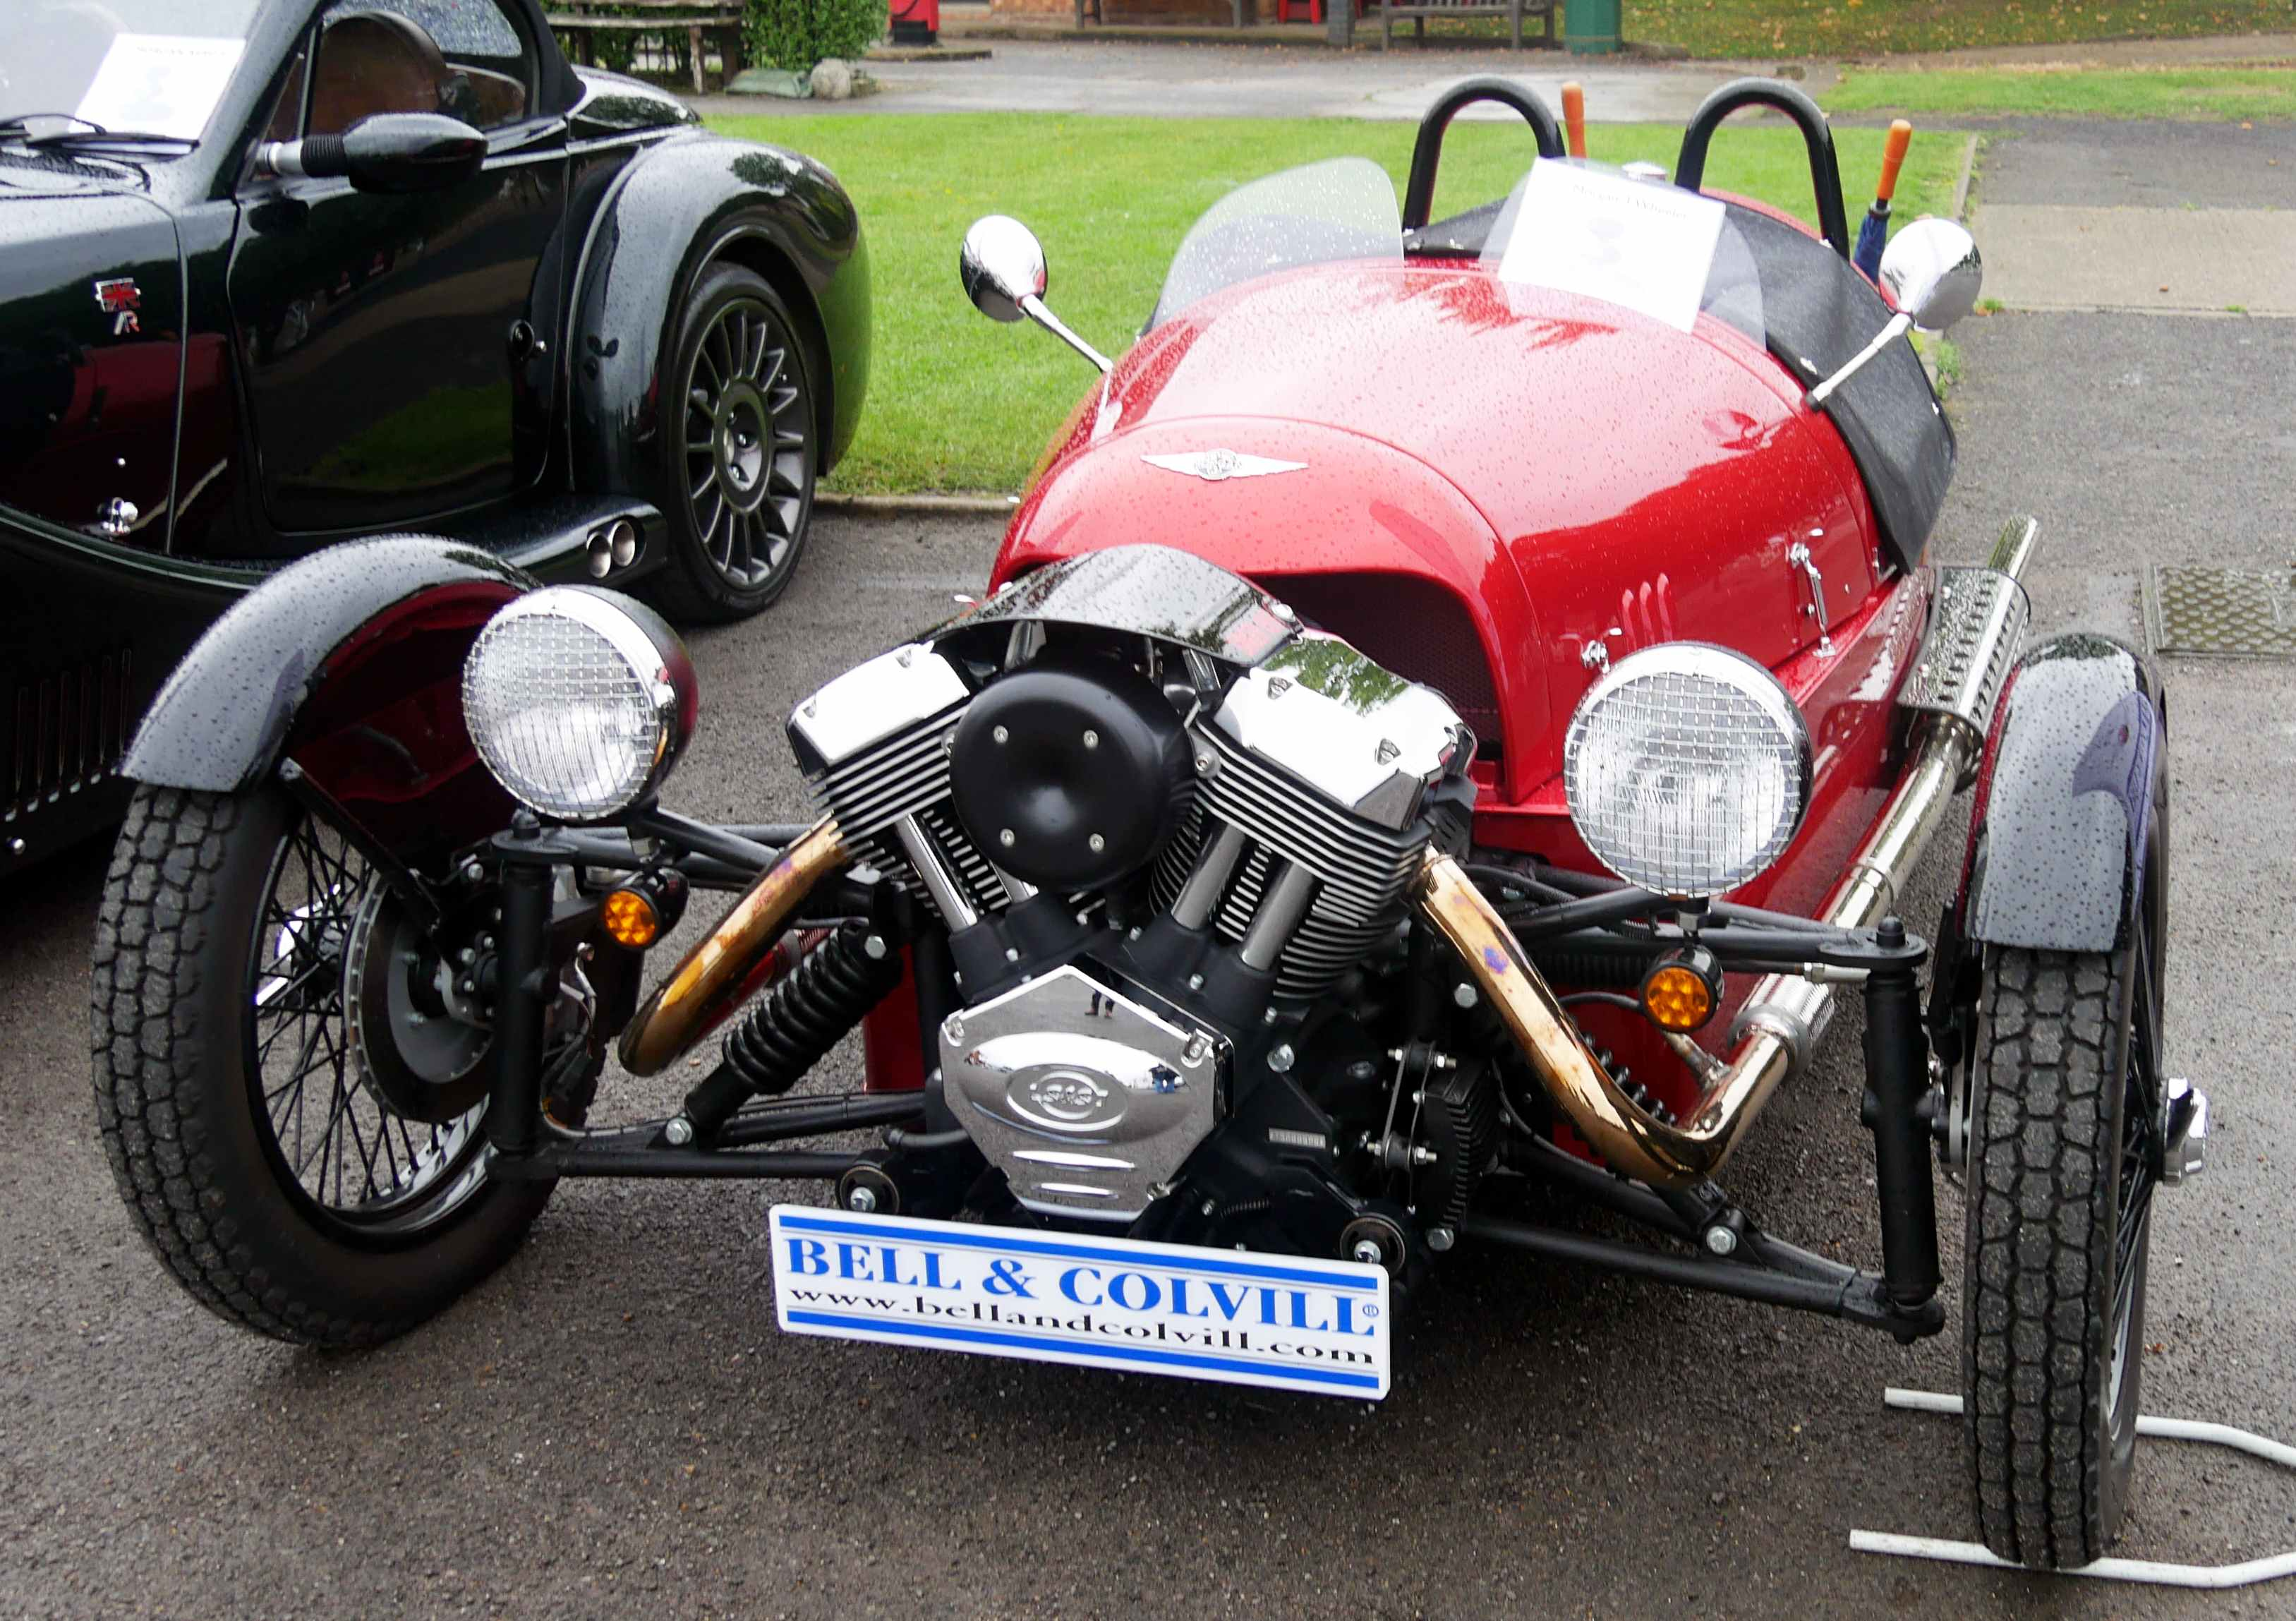 A new Morgan three-wheeler for sale at Bell and Colville. Identical sliding pillar suspension on show.